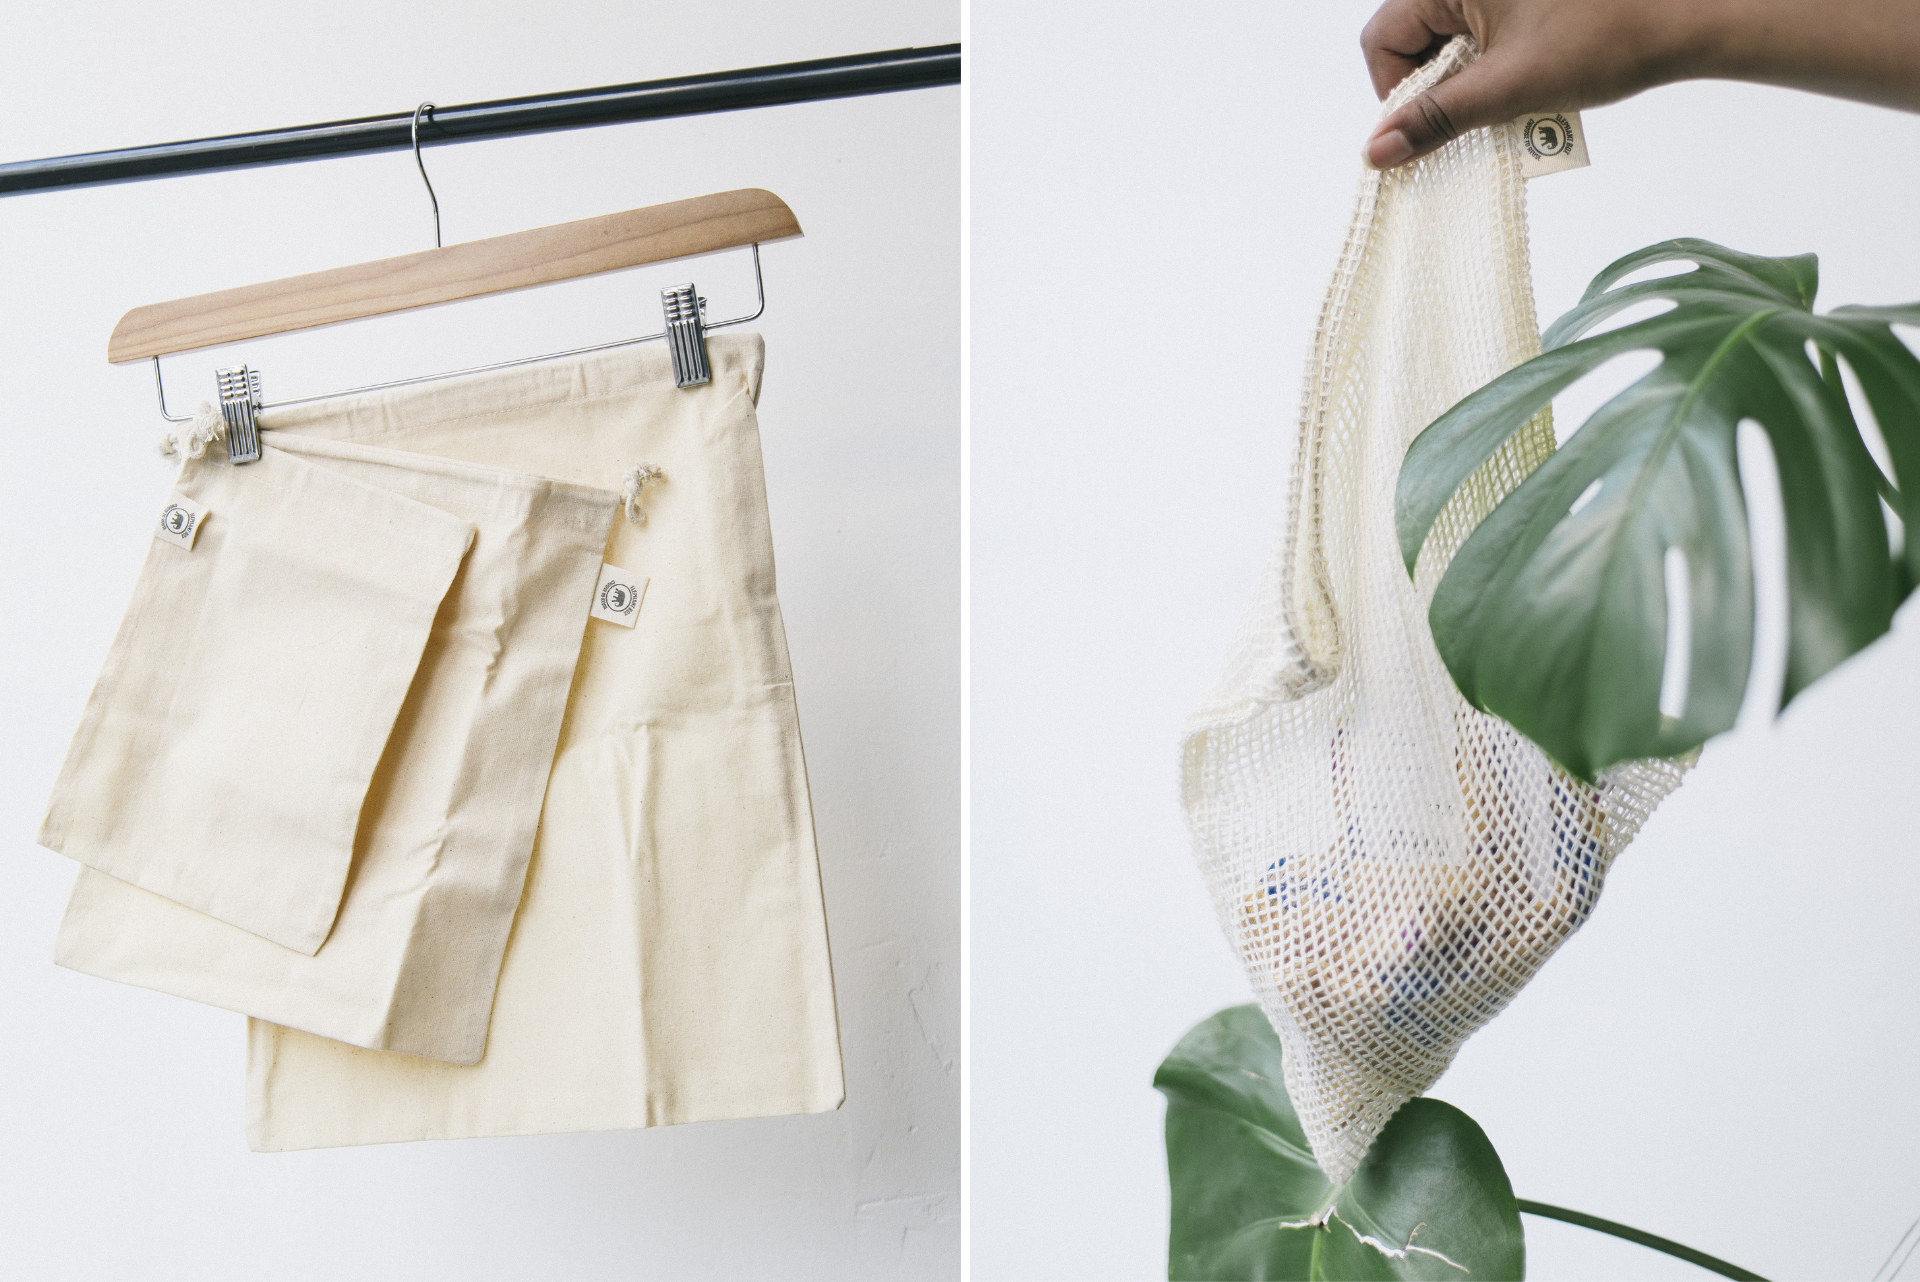 Organic bags for shopping and laundry. Reusable bags. Plastic-free bags. Elephant Box bags. Cloth and mesh bags. Bags hanging on clothes hanger. Hand holding a mesh bag by some green plants. 27 Best Eco-Friendly Travel Products That Will Change Your Life. Eco friendly products for sustainable travel. Eco-friendly products. Earth friendly products. Travel accessories. Eco friendly bags. Eco friendly travel bags. Eco friendly gifts. Eco friendly clothing. Eco friendly water bottles. Ethical travel. Responsible travel. Eco friendly holidays. Eco friendly tourism. Eco friendly hotels. Eco friendly vacations. Sustainable tourism. Ecotourism. Sustainable holidays. Eco travel. Click through to read more...